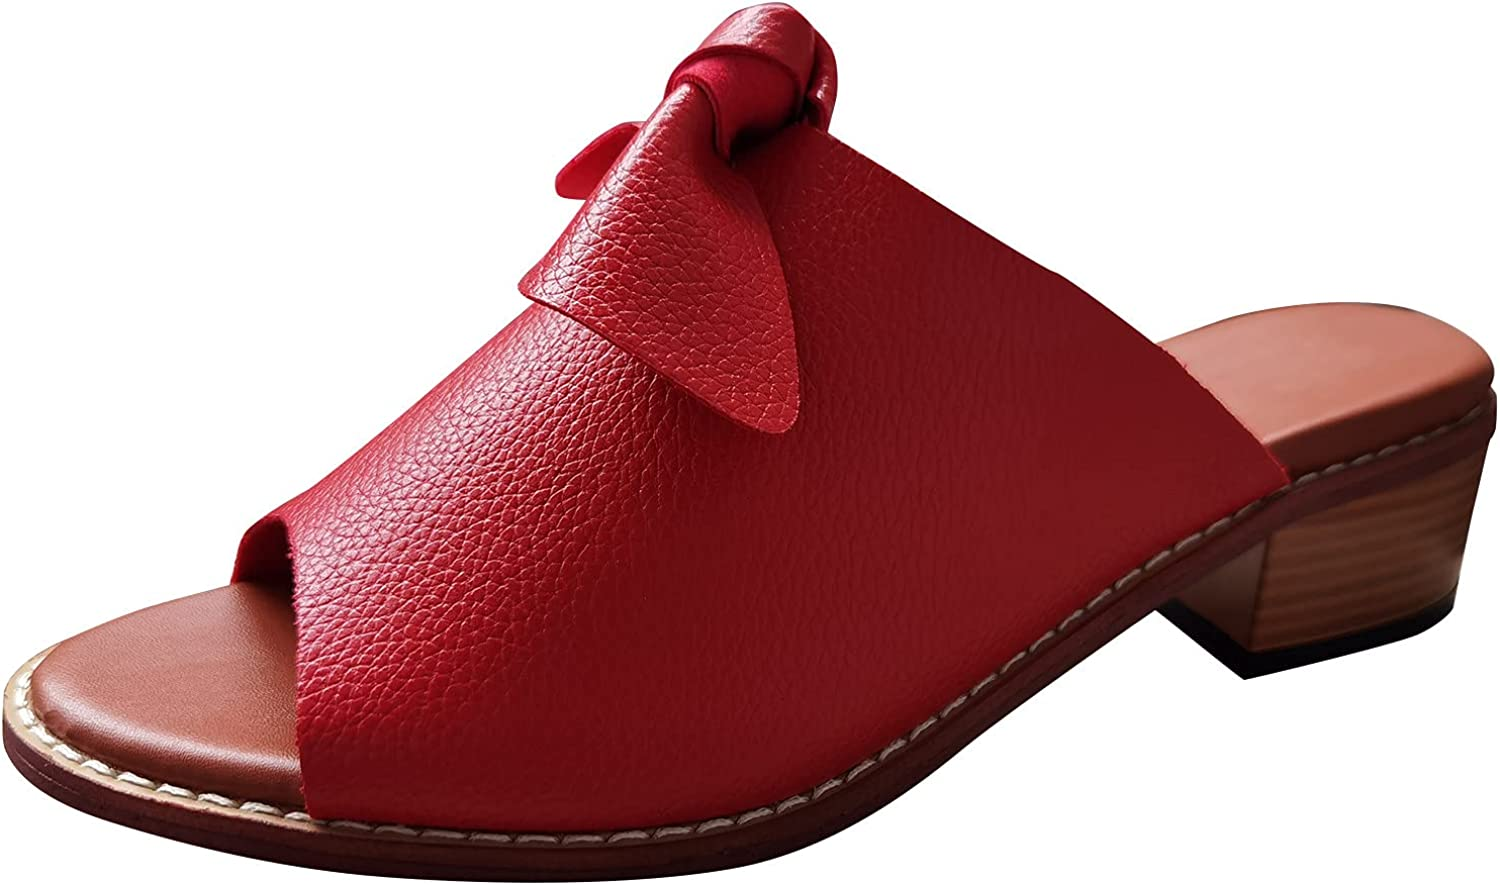 Women's Fashion Squared Heel Peep Toe Sandals Casual Kontbow Slip On Shoes